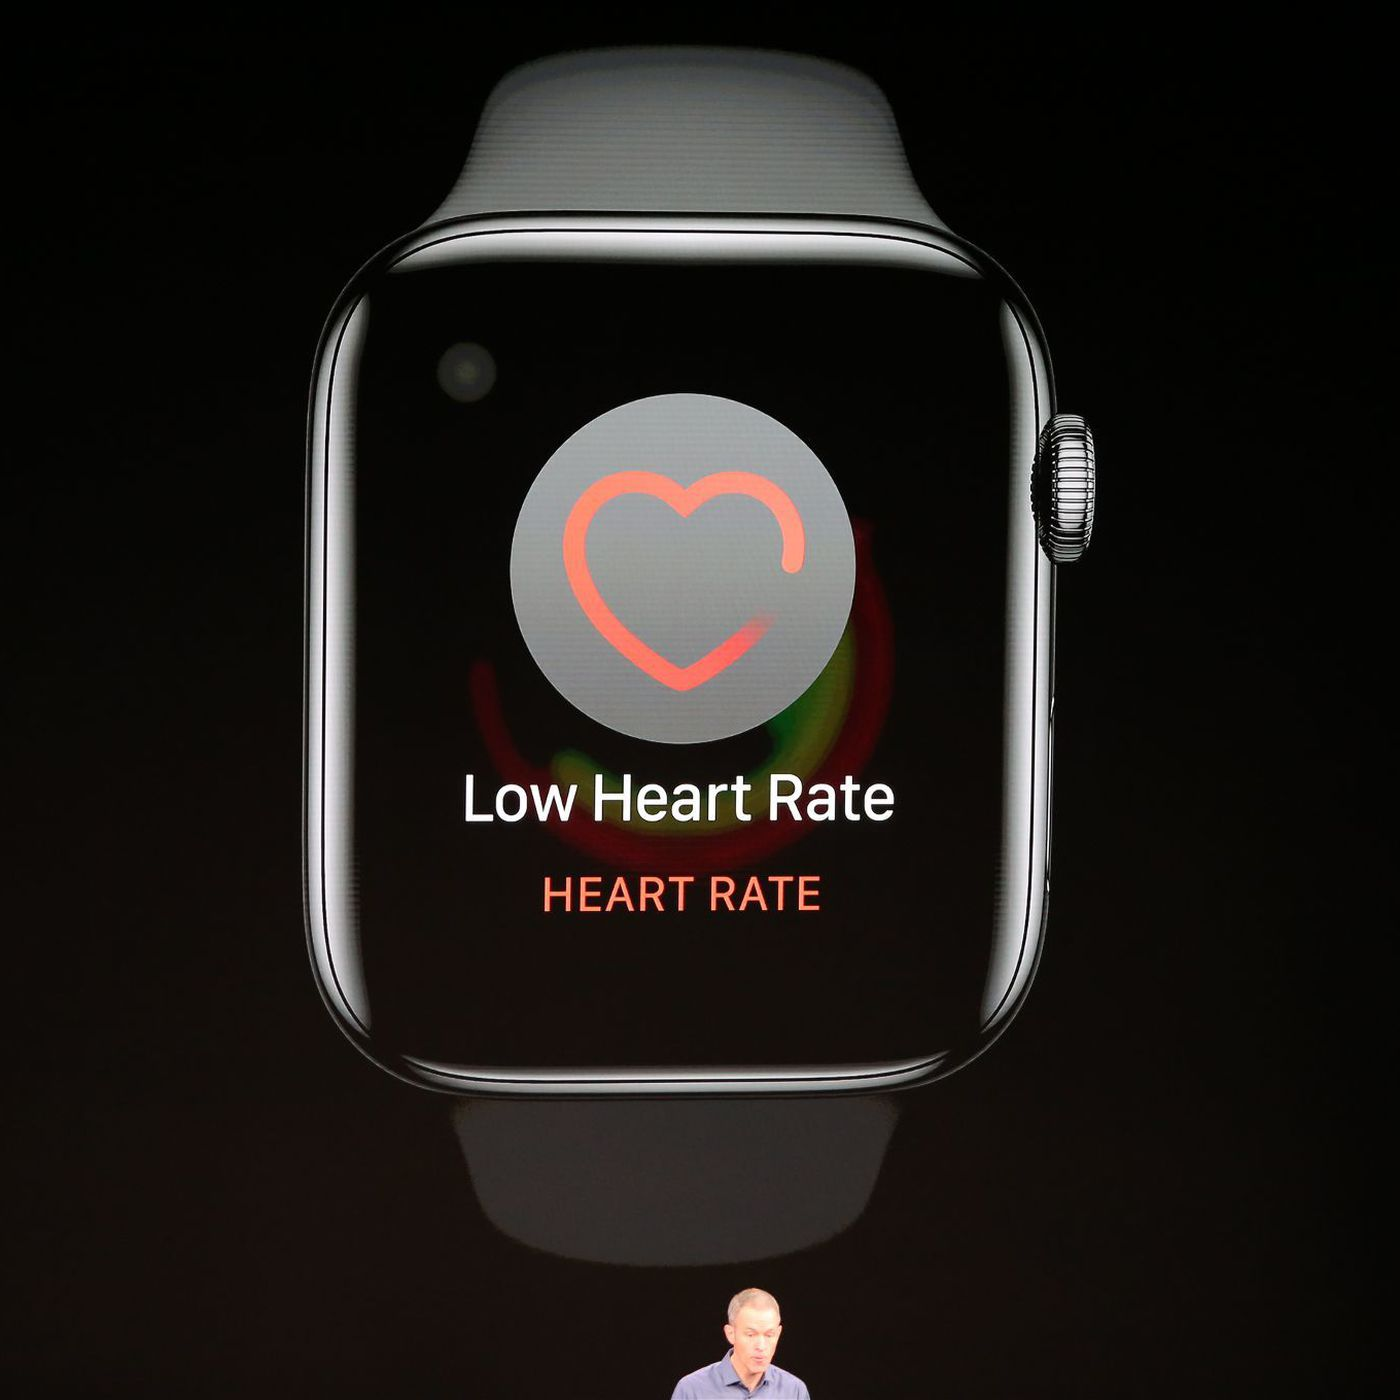 theverge.com - Angela Chen - Why an Apple Watch with EKG matters